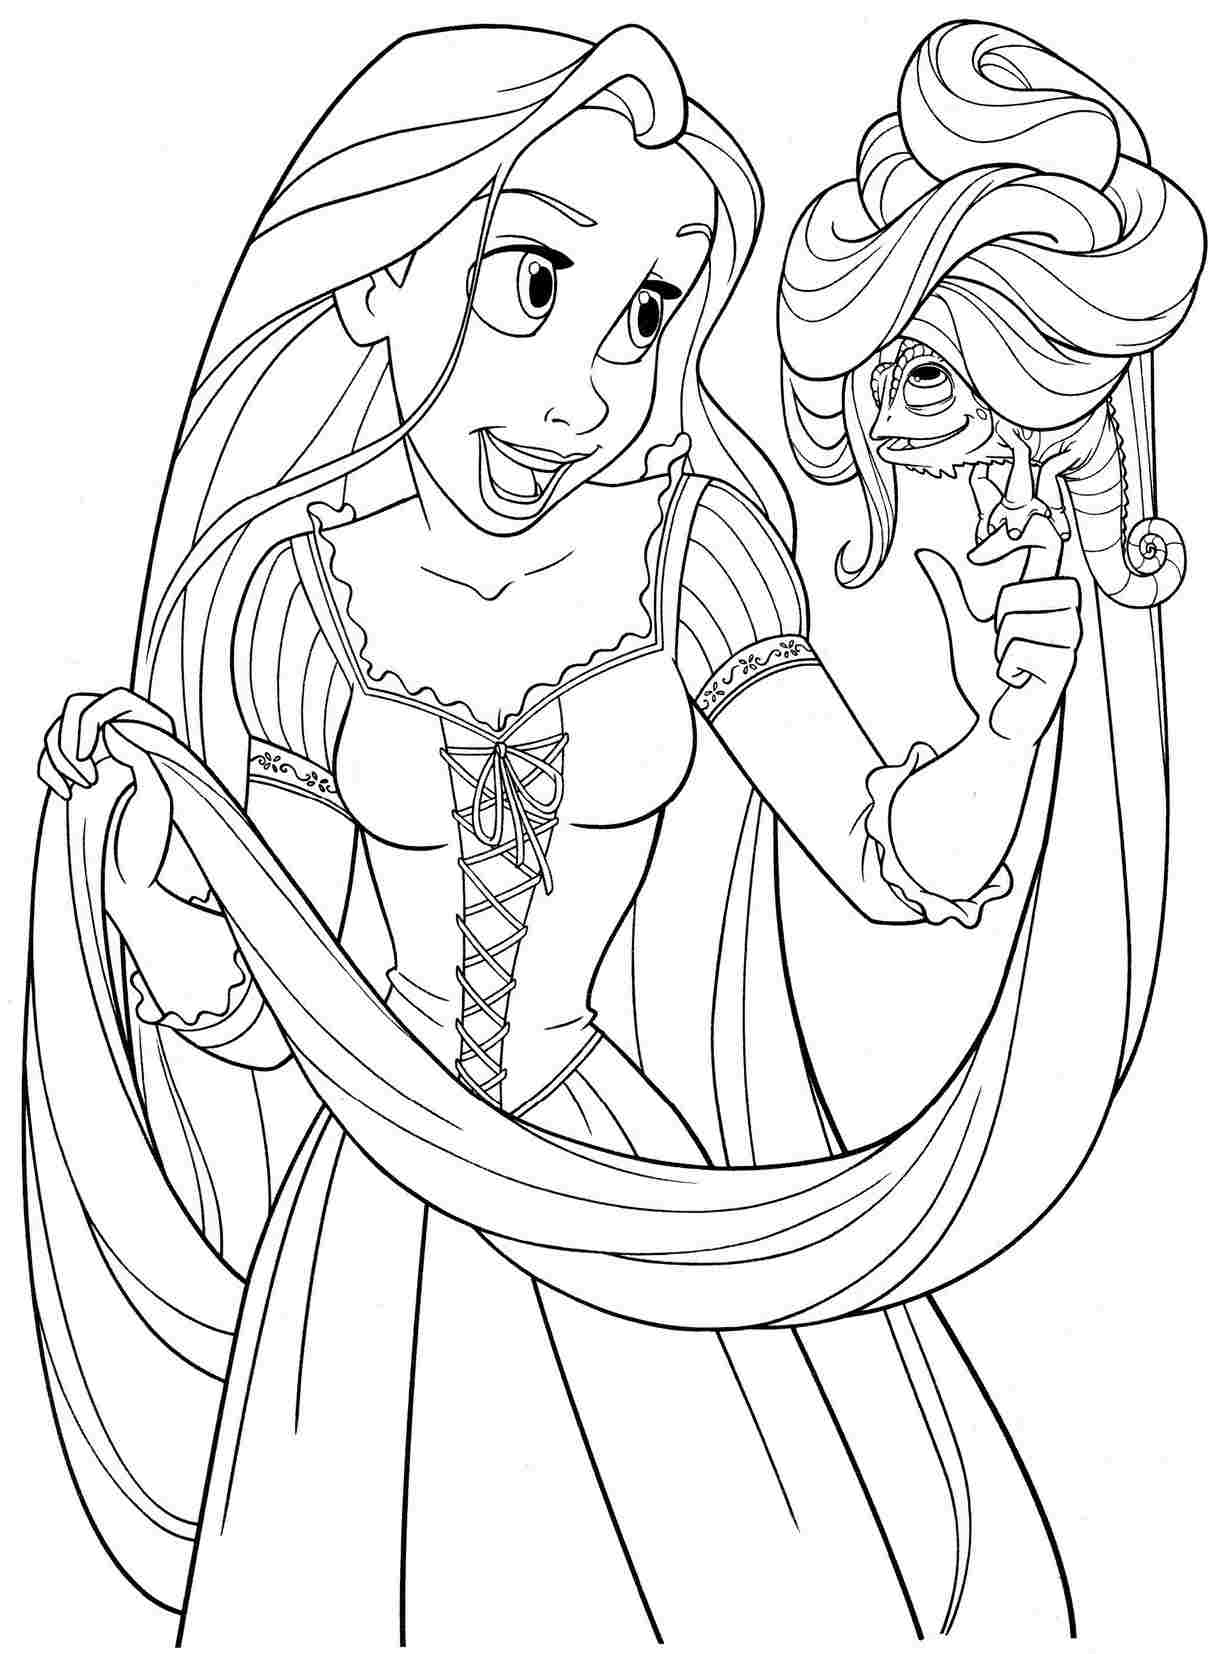 coloring pages of rapunzel rapunzel coloring pages to download and print for free of rapunzel coloring pages